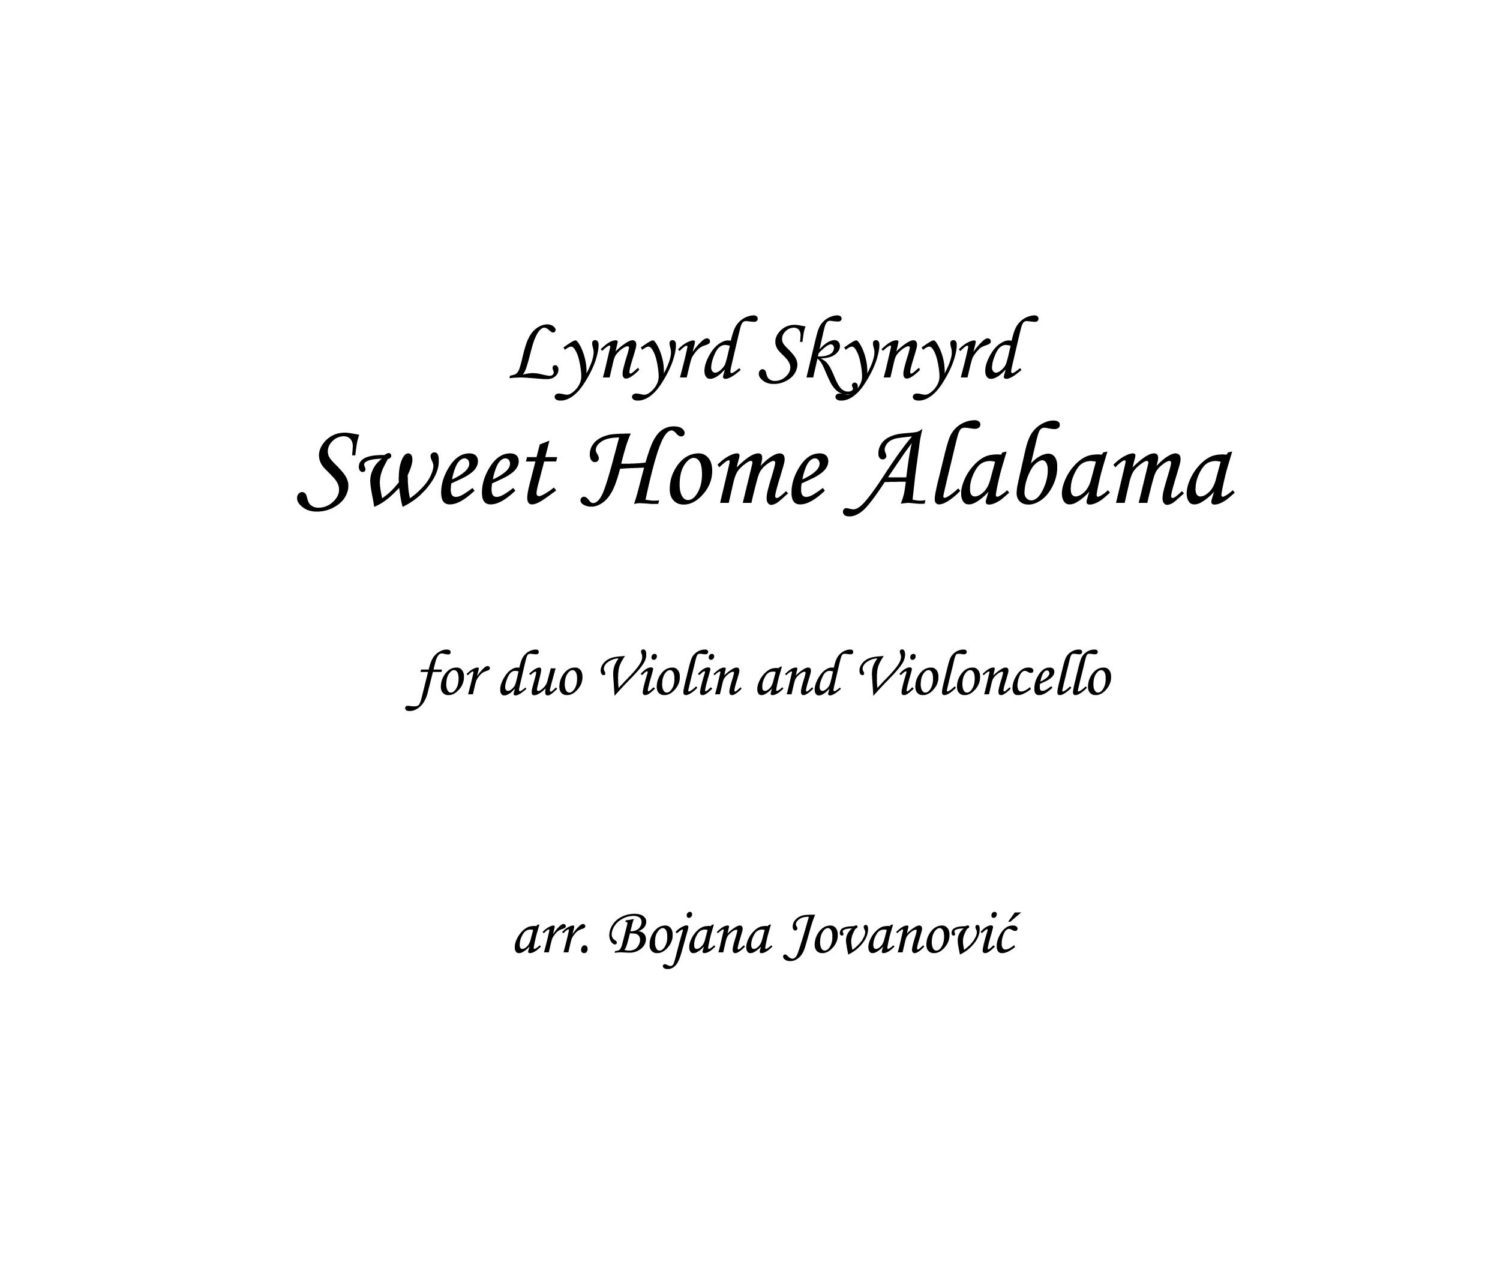 The instrumental for sweet home alabama is in the key of g major, has a tempo of 98 bpm, and is 4 minutes and 43 seconds long. Sweet Home Alabama Sheet Music Lynyrd Skynyrd Violin Cello